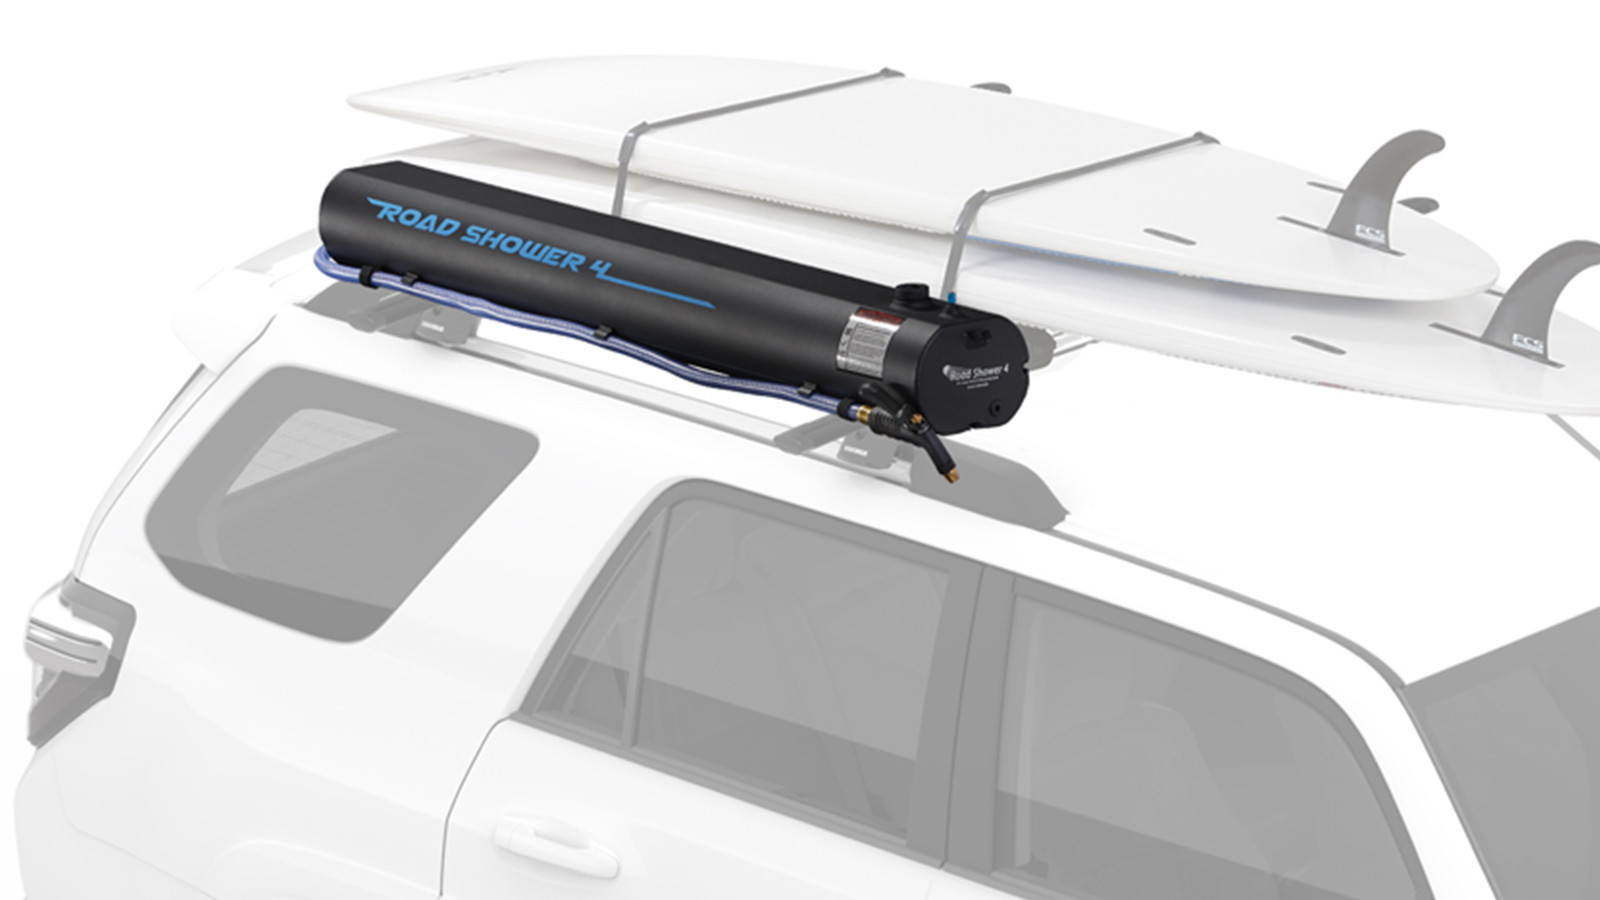 Yakima Acquires Road Shower, the Rooftop Water Tank System